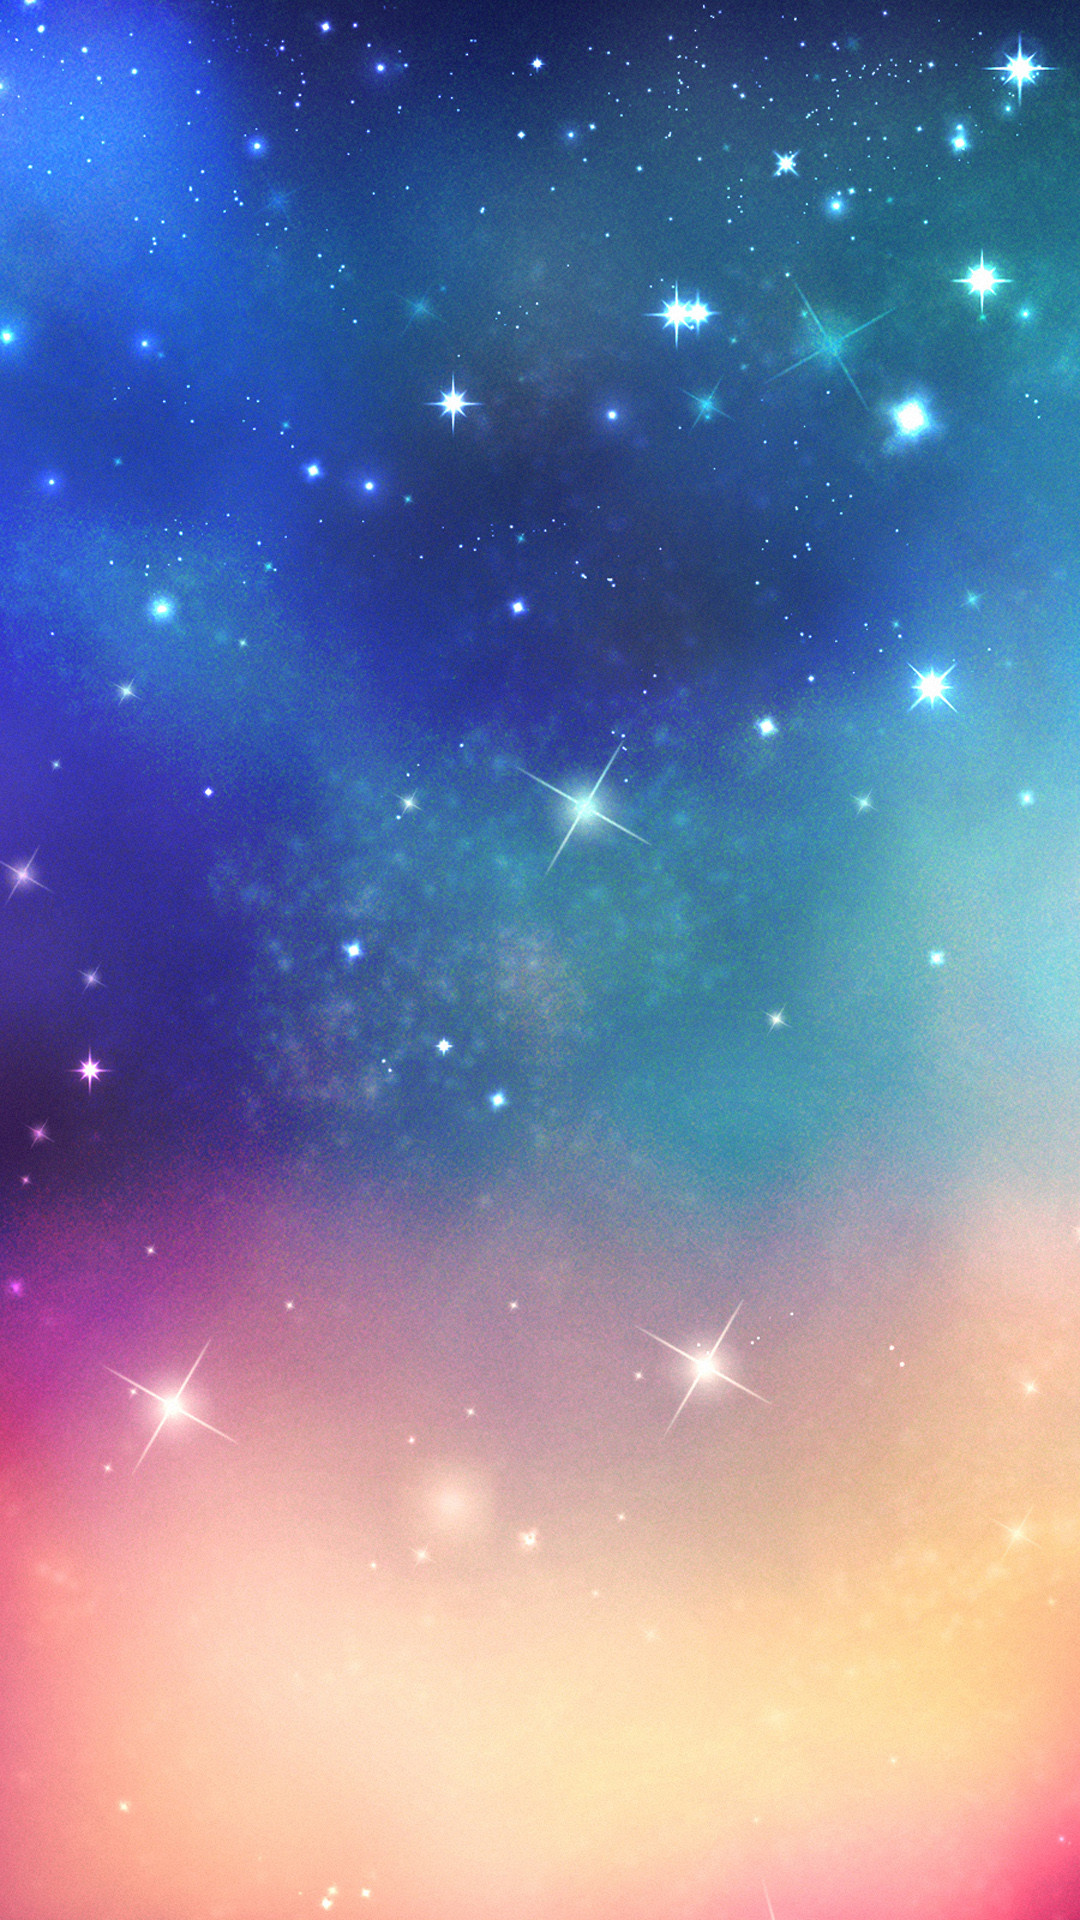 Shiny Fantasy Ouer Space #iPhone #7 #wallpaper